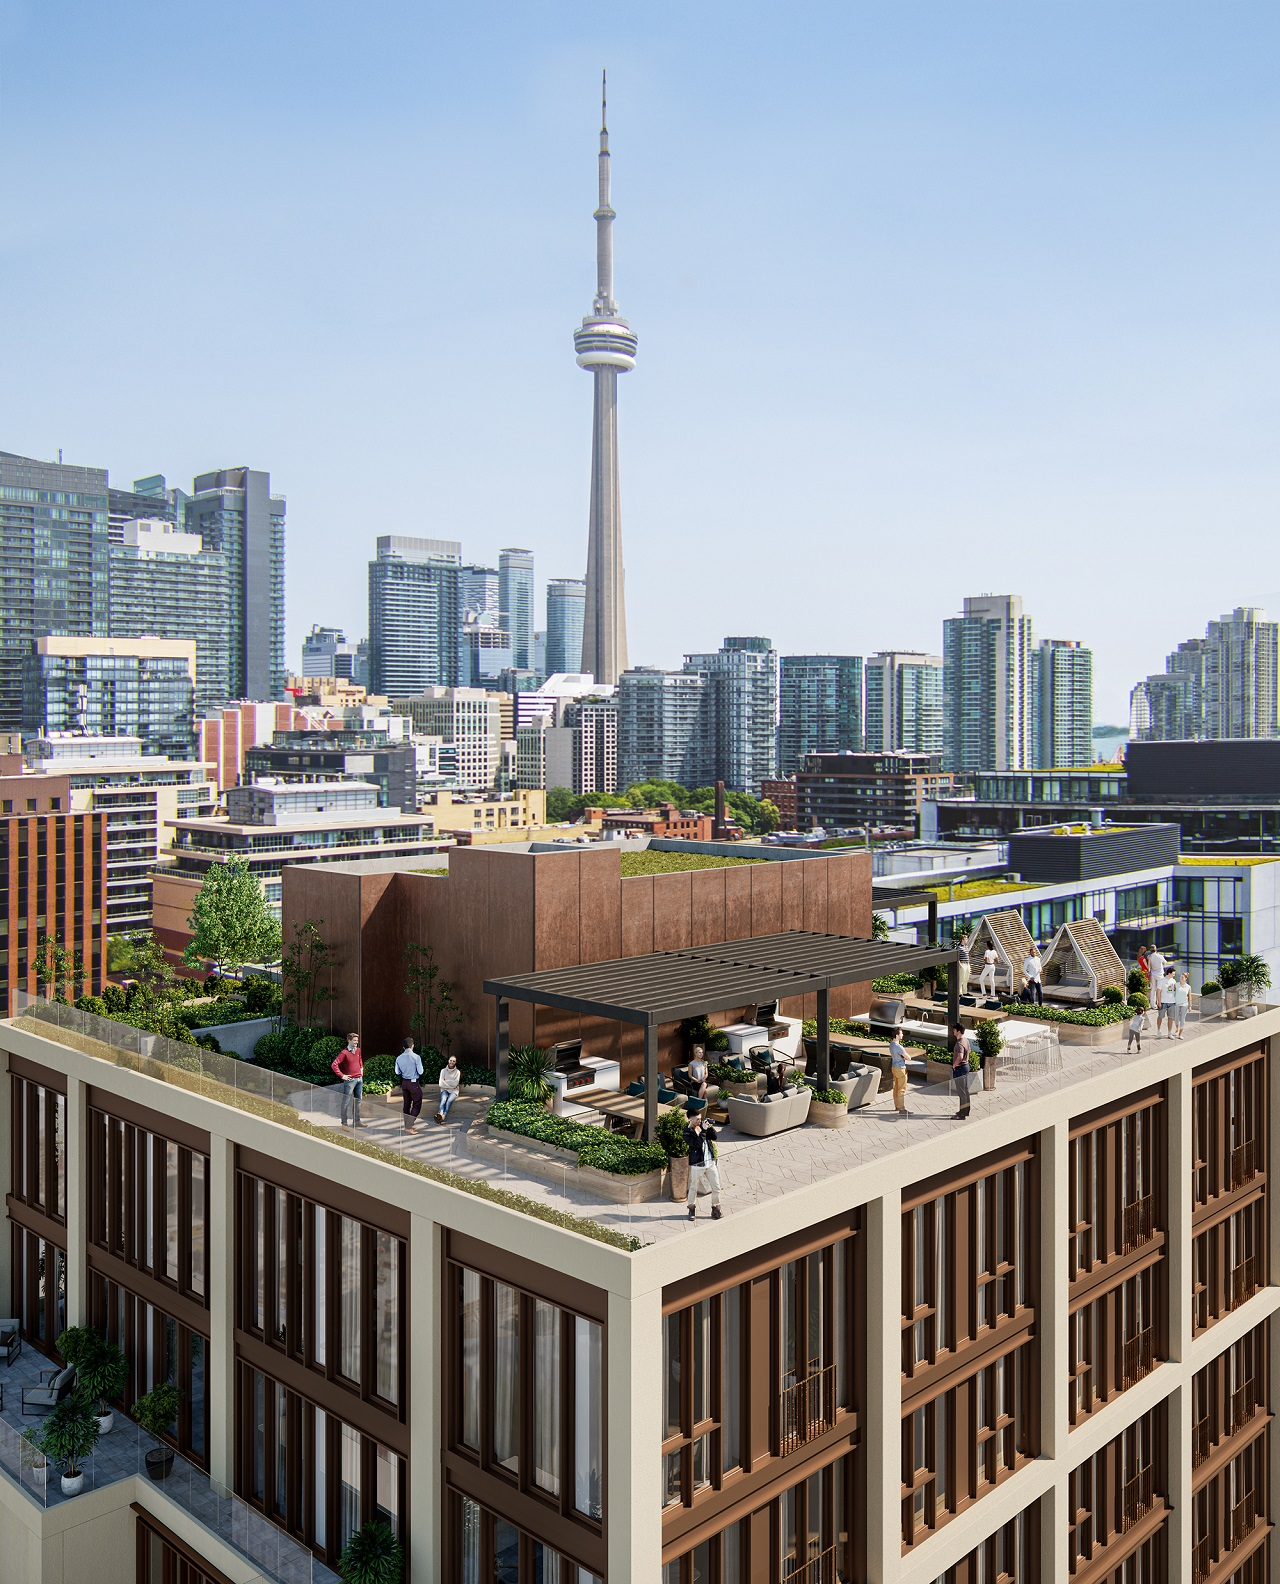 Rendering of 123 Portland Condos rooftop terrace with views of Toronto's CN tower.